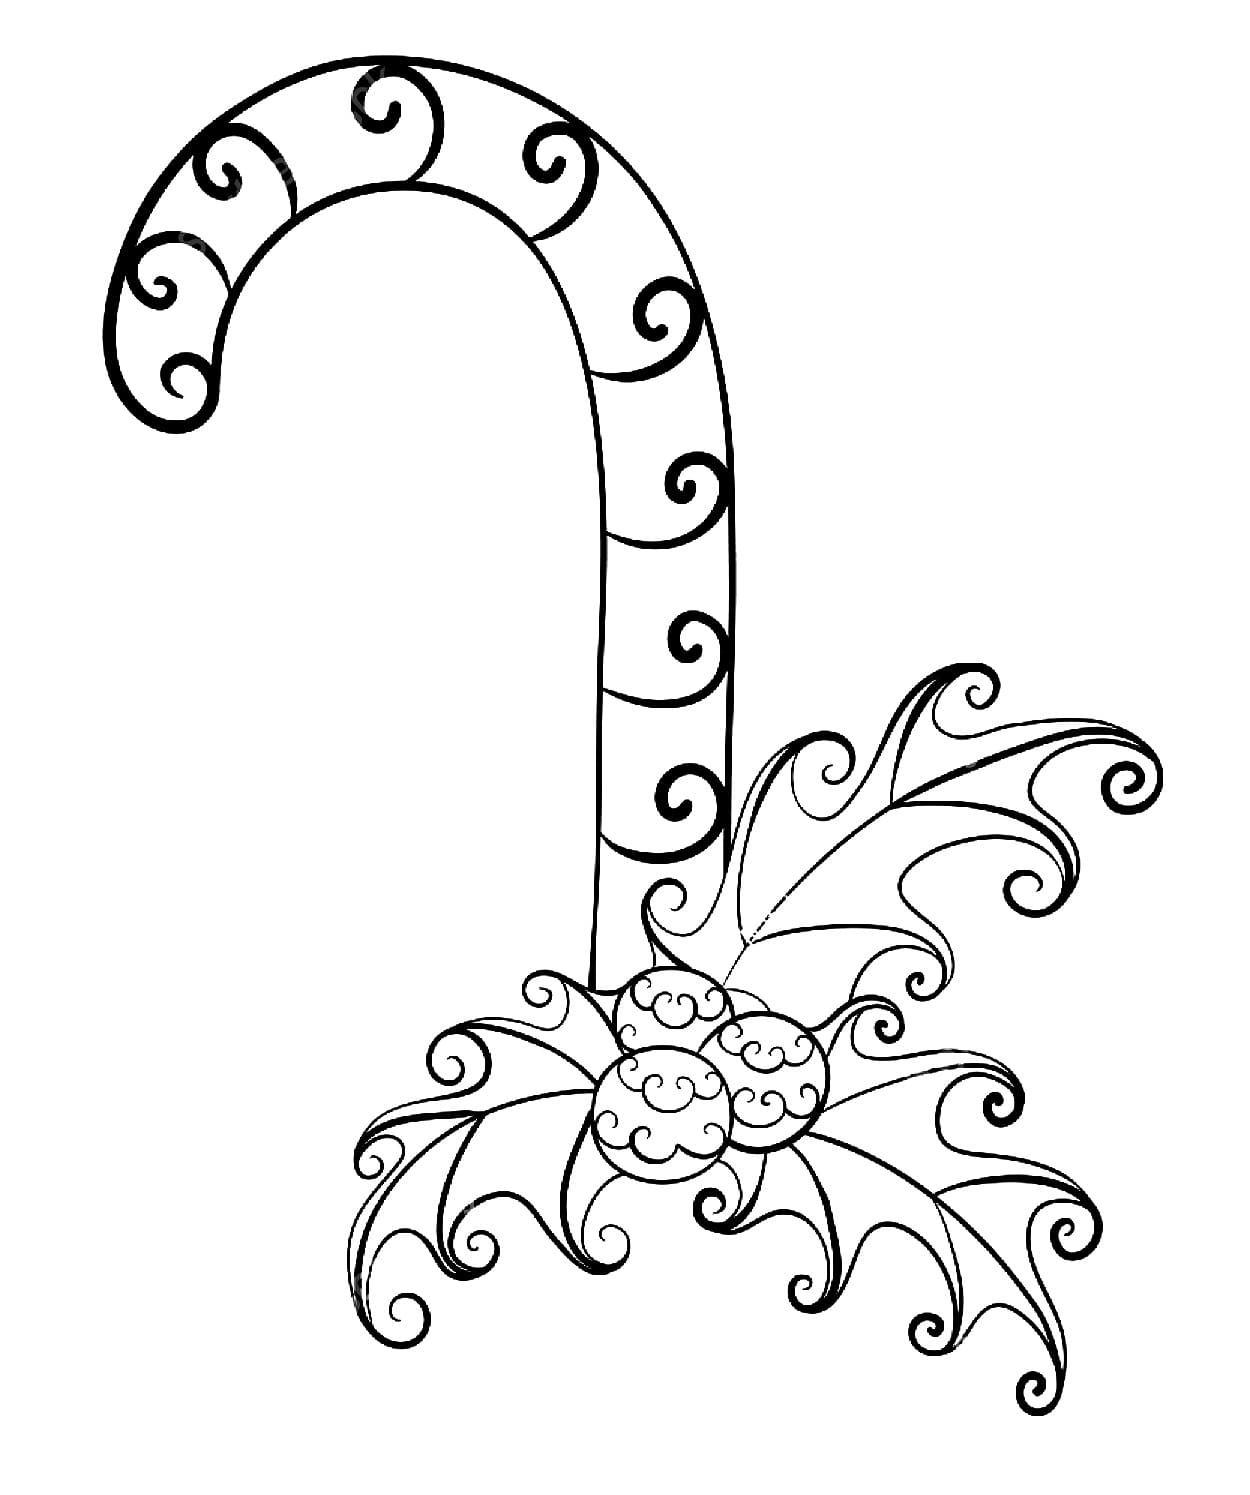 Candy Cane Coloring Pages. Free Printable Coloring Pages